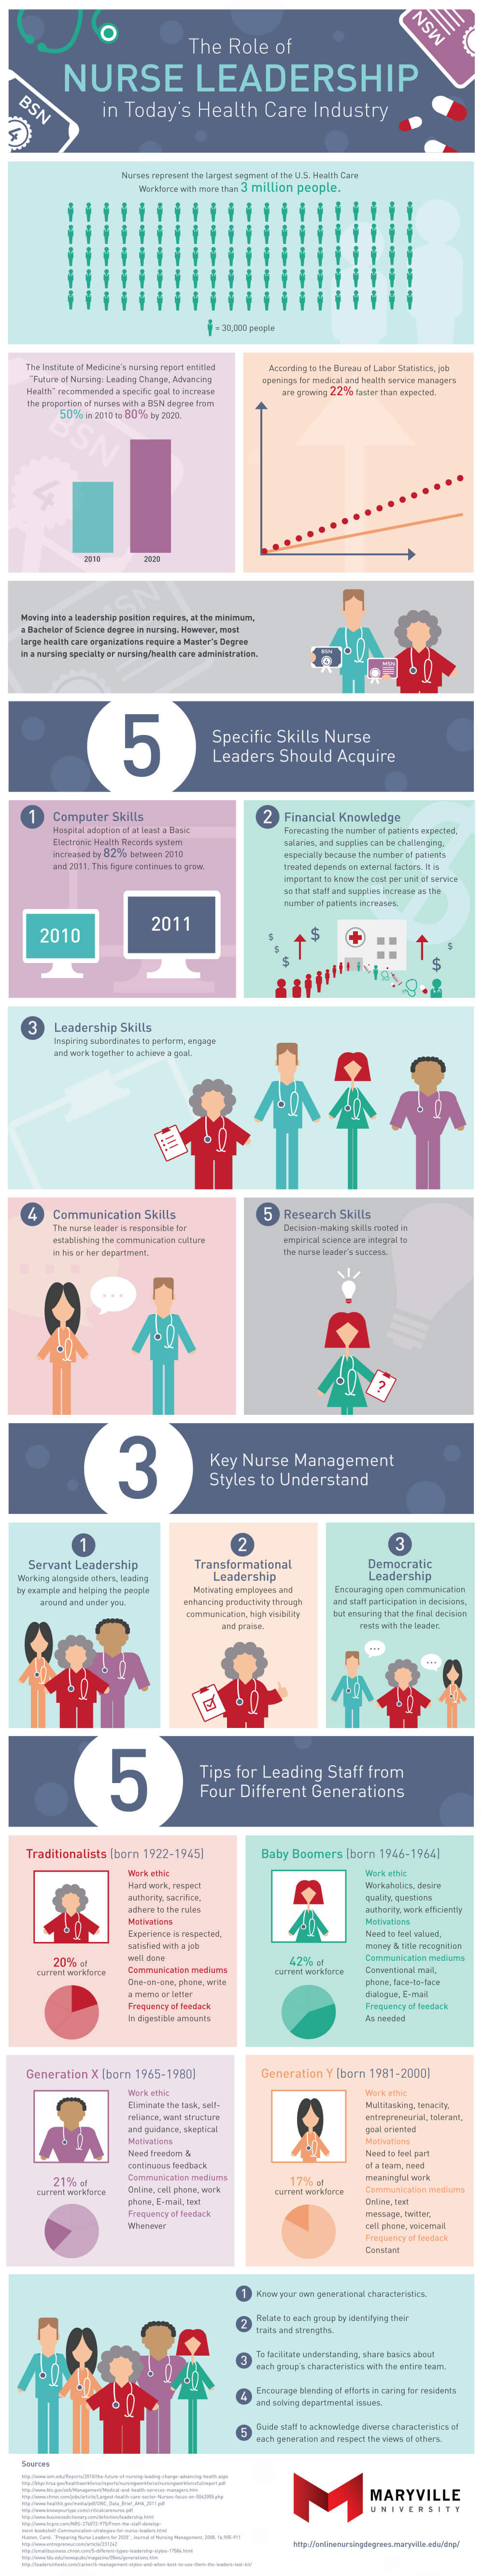 The Role of Nurse Leadership in Today's Health Care Industry